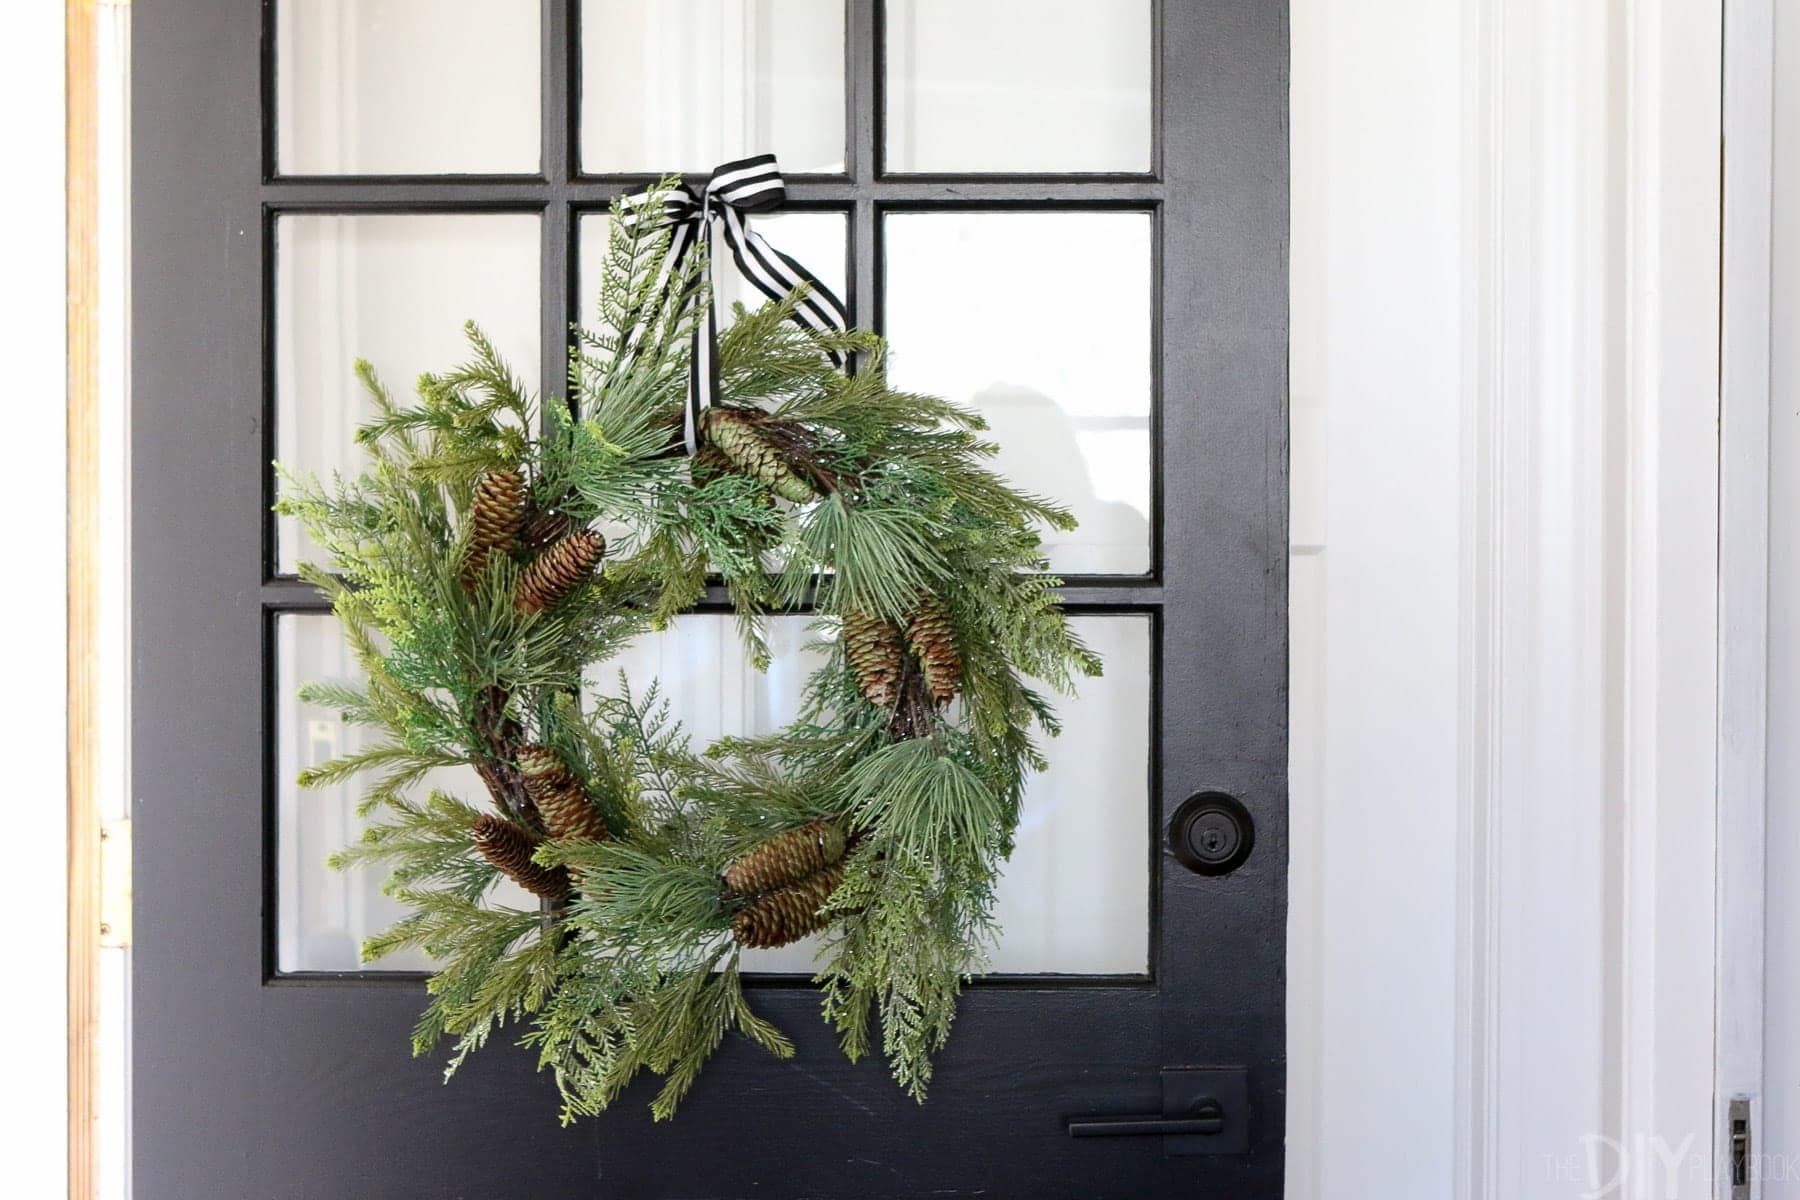 This black windowpane door is really dressed up for the holidays with a simple pine bough wreath.